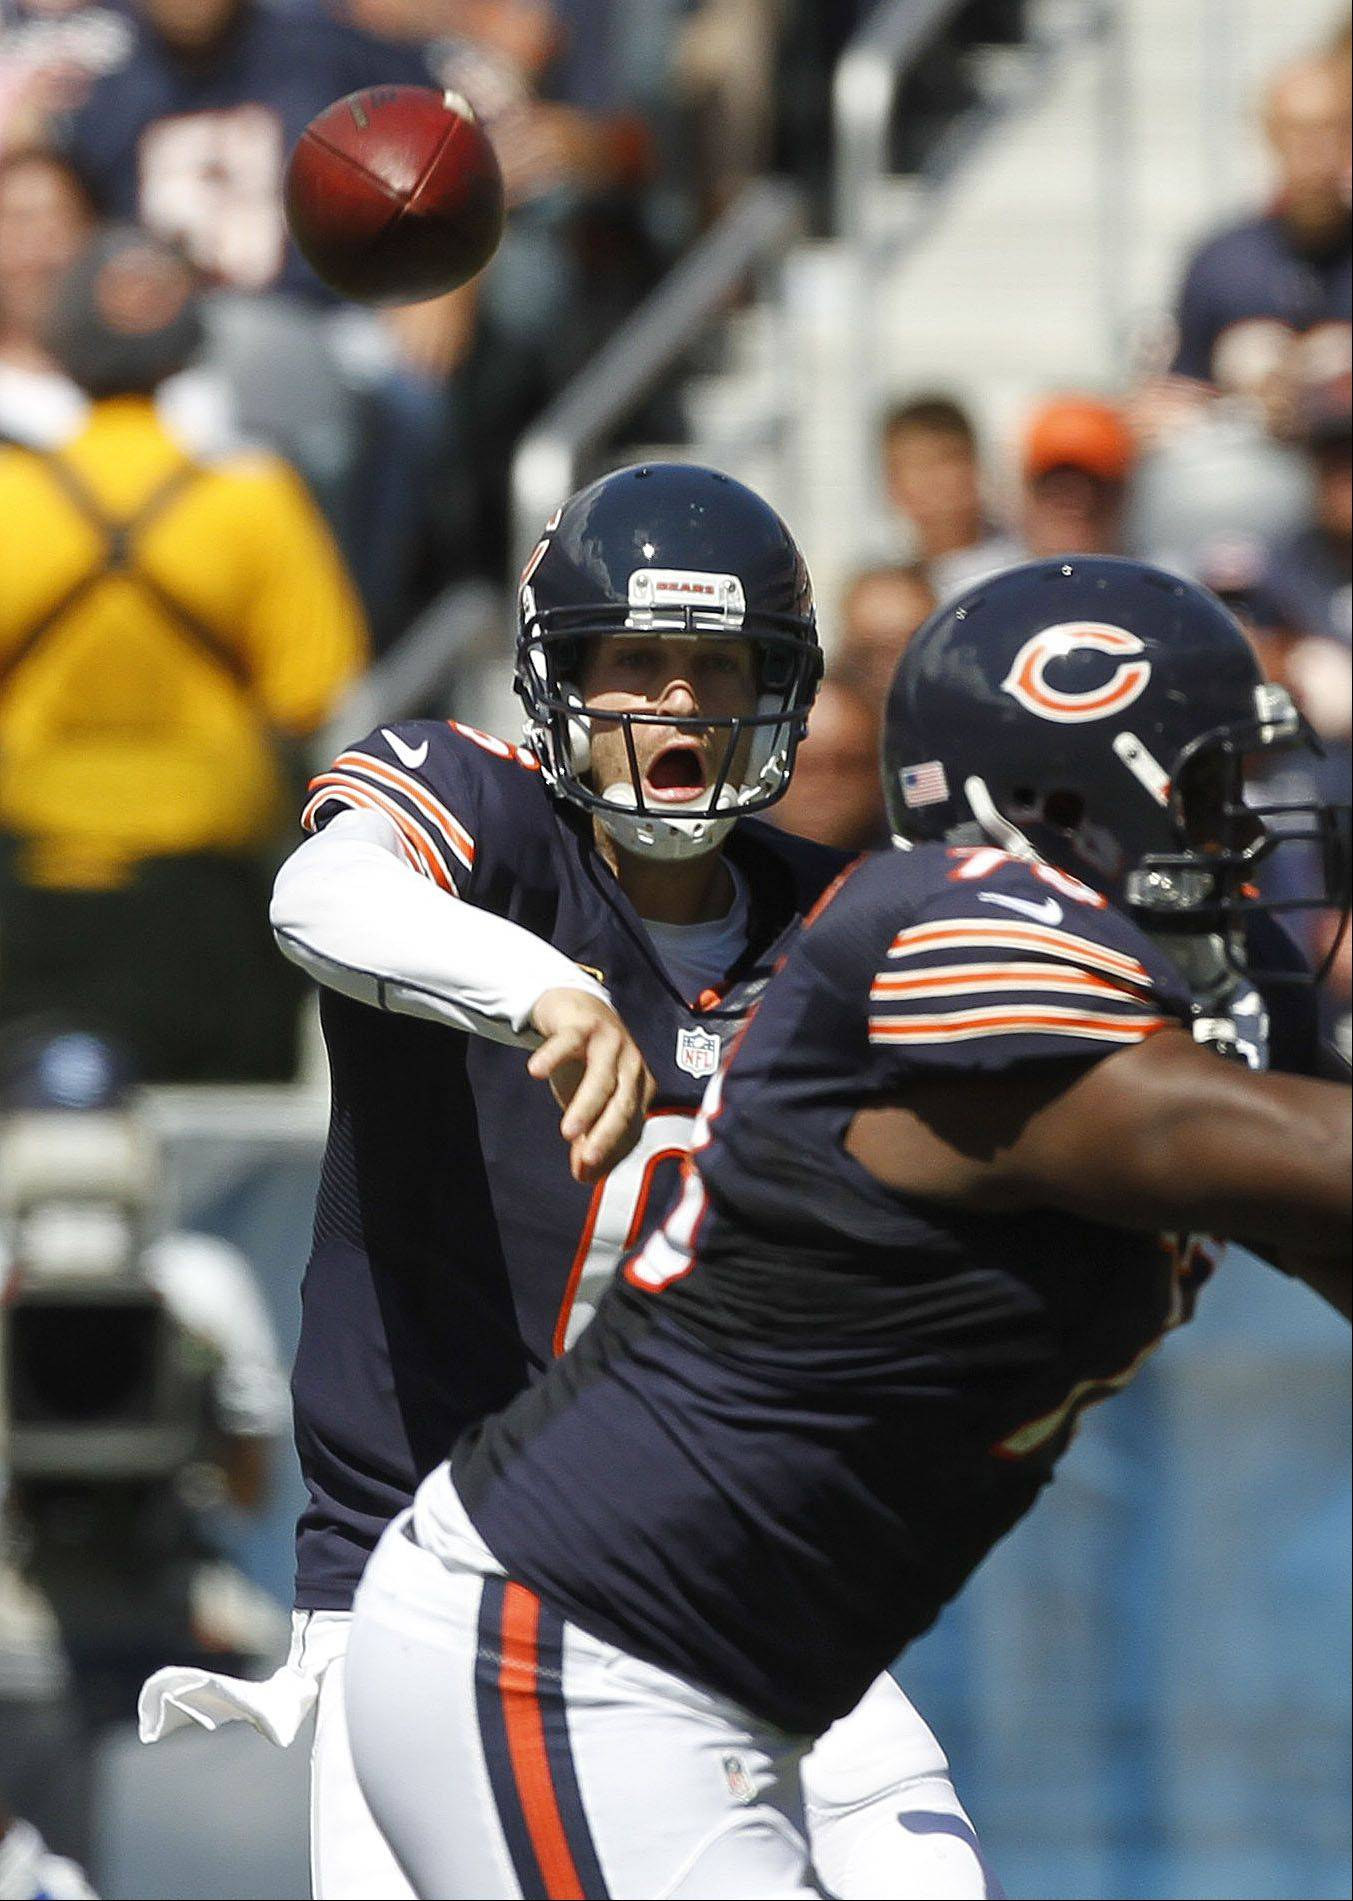 Chicago Bears quarterback Jay Cutler throws during the Bears season opener.